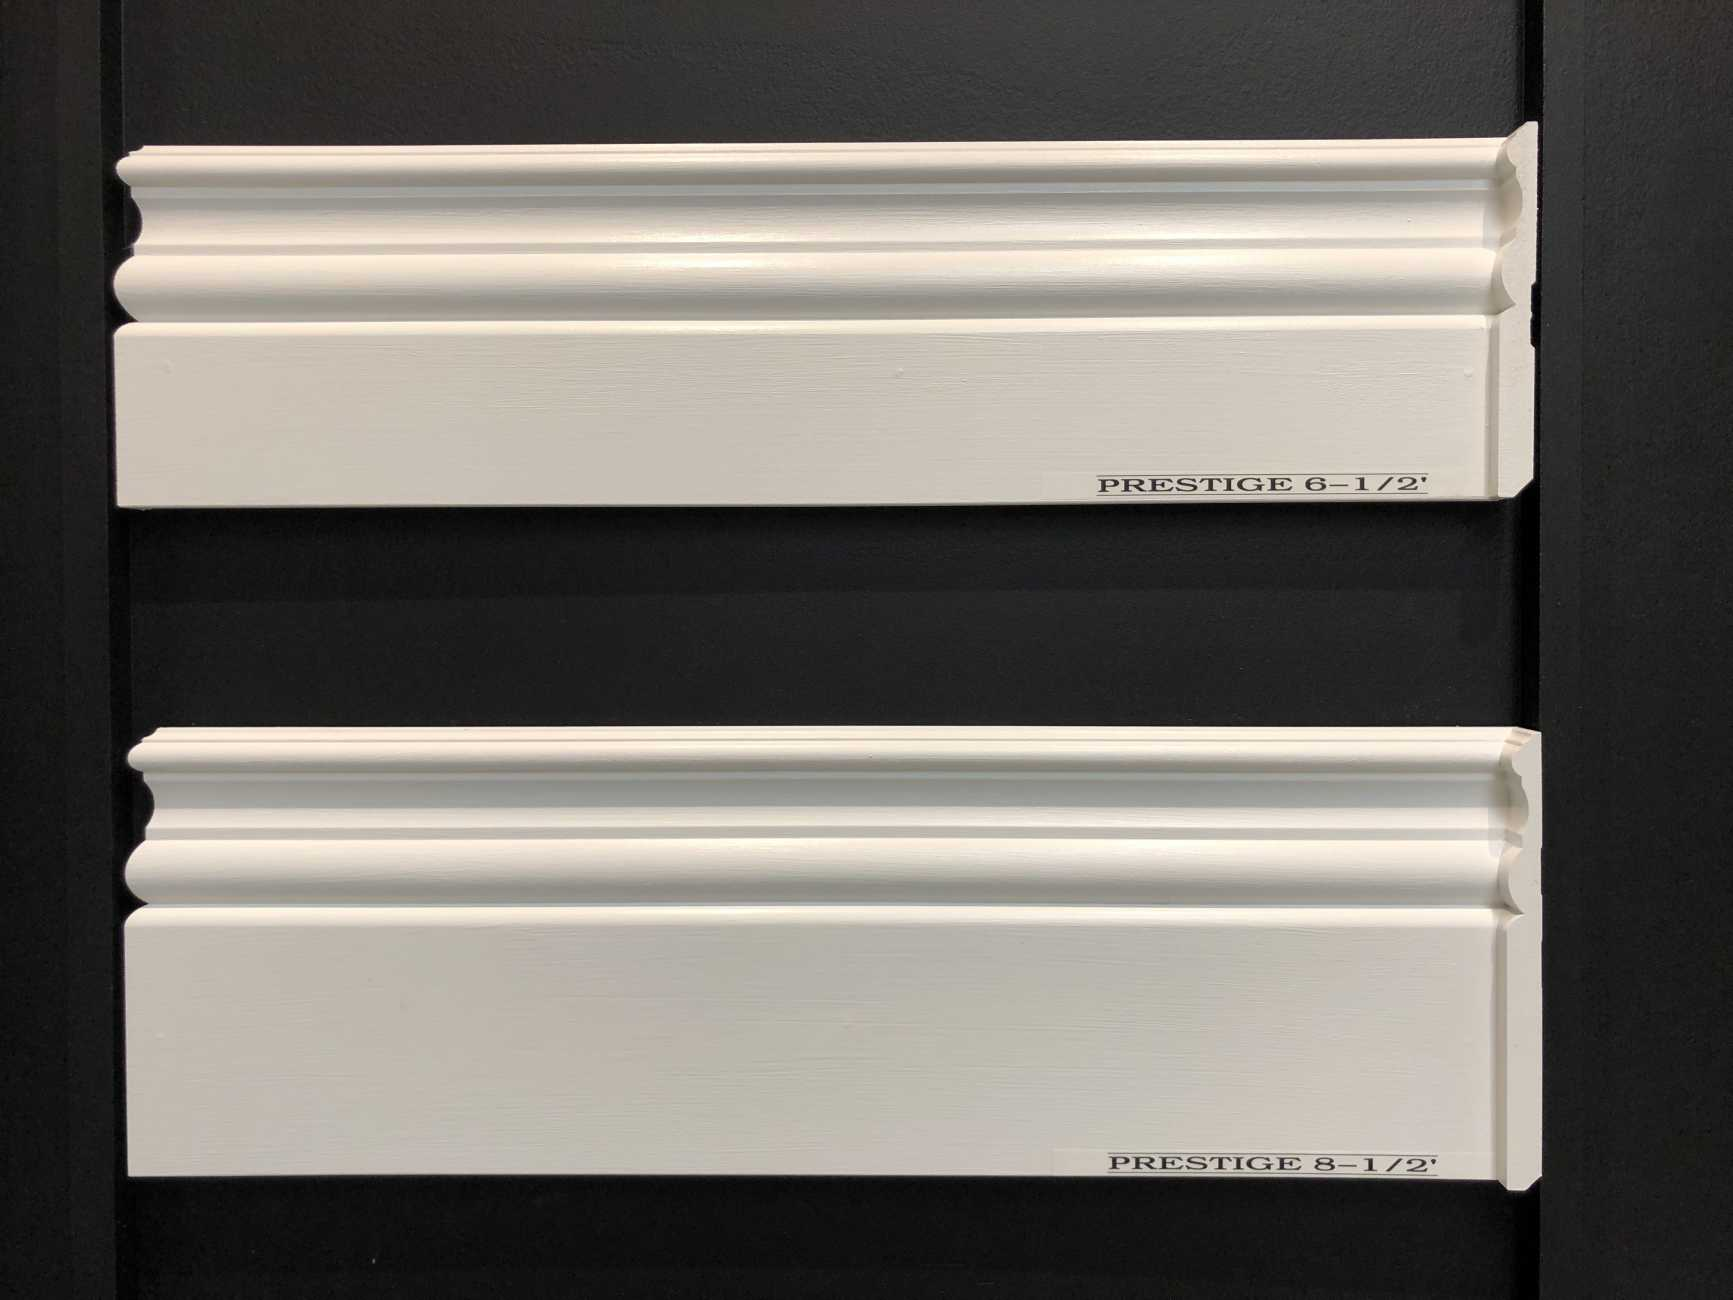 Baseboards Project Gallery Vip Classic Moulding